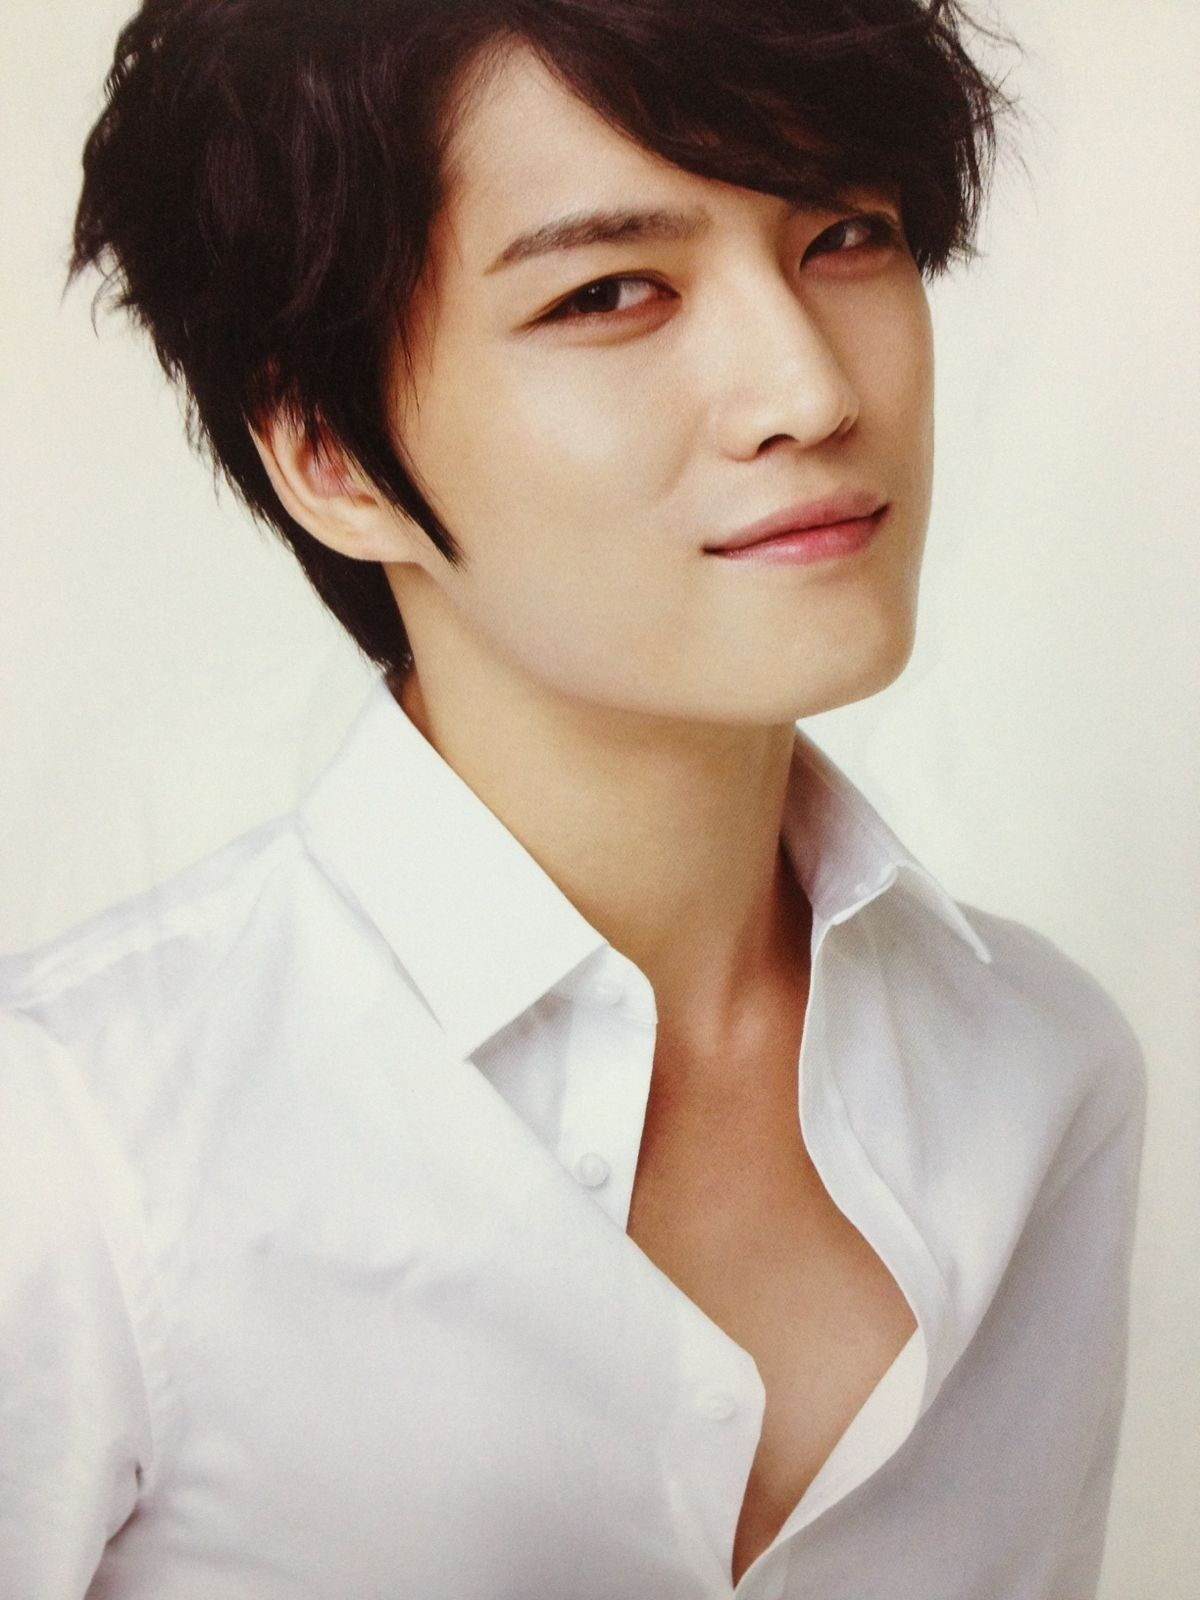 Jaejoong www | HQ PIC] 121128 Jaejoong for Tony Moly